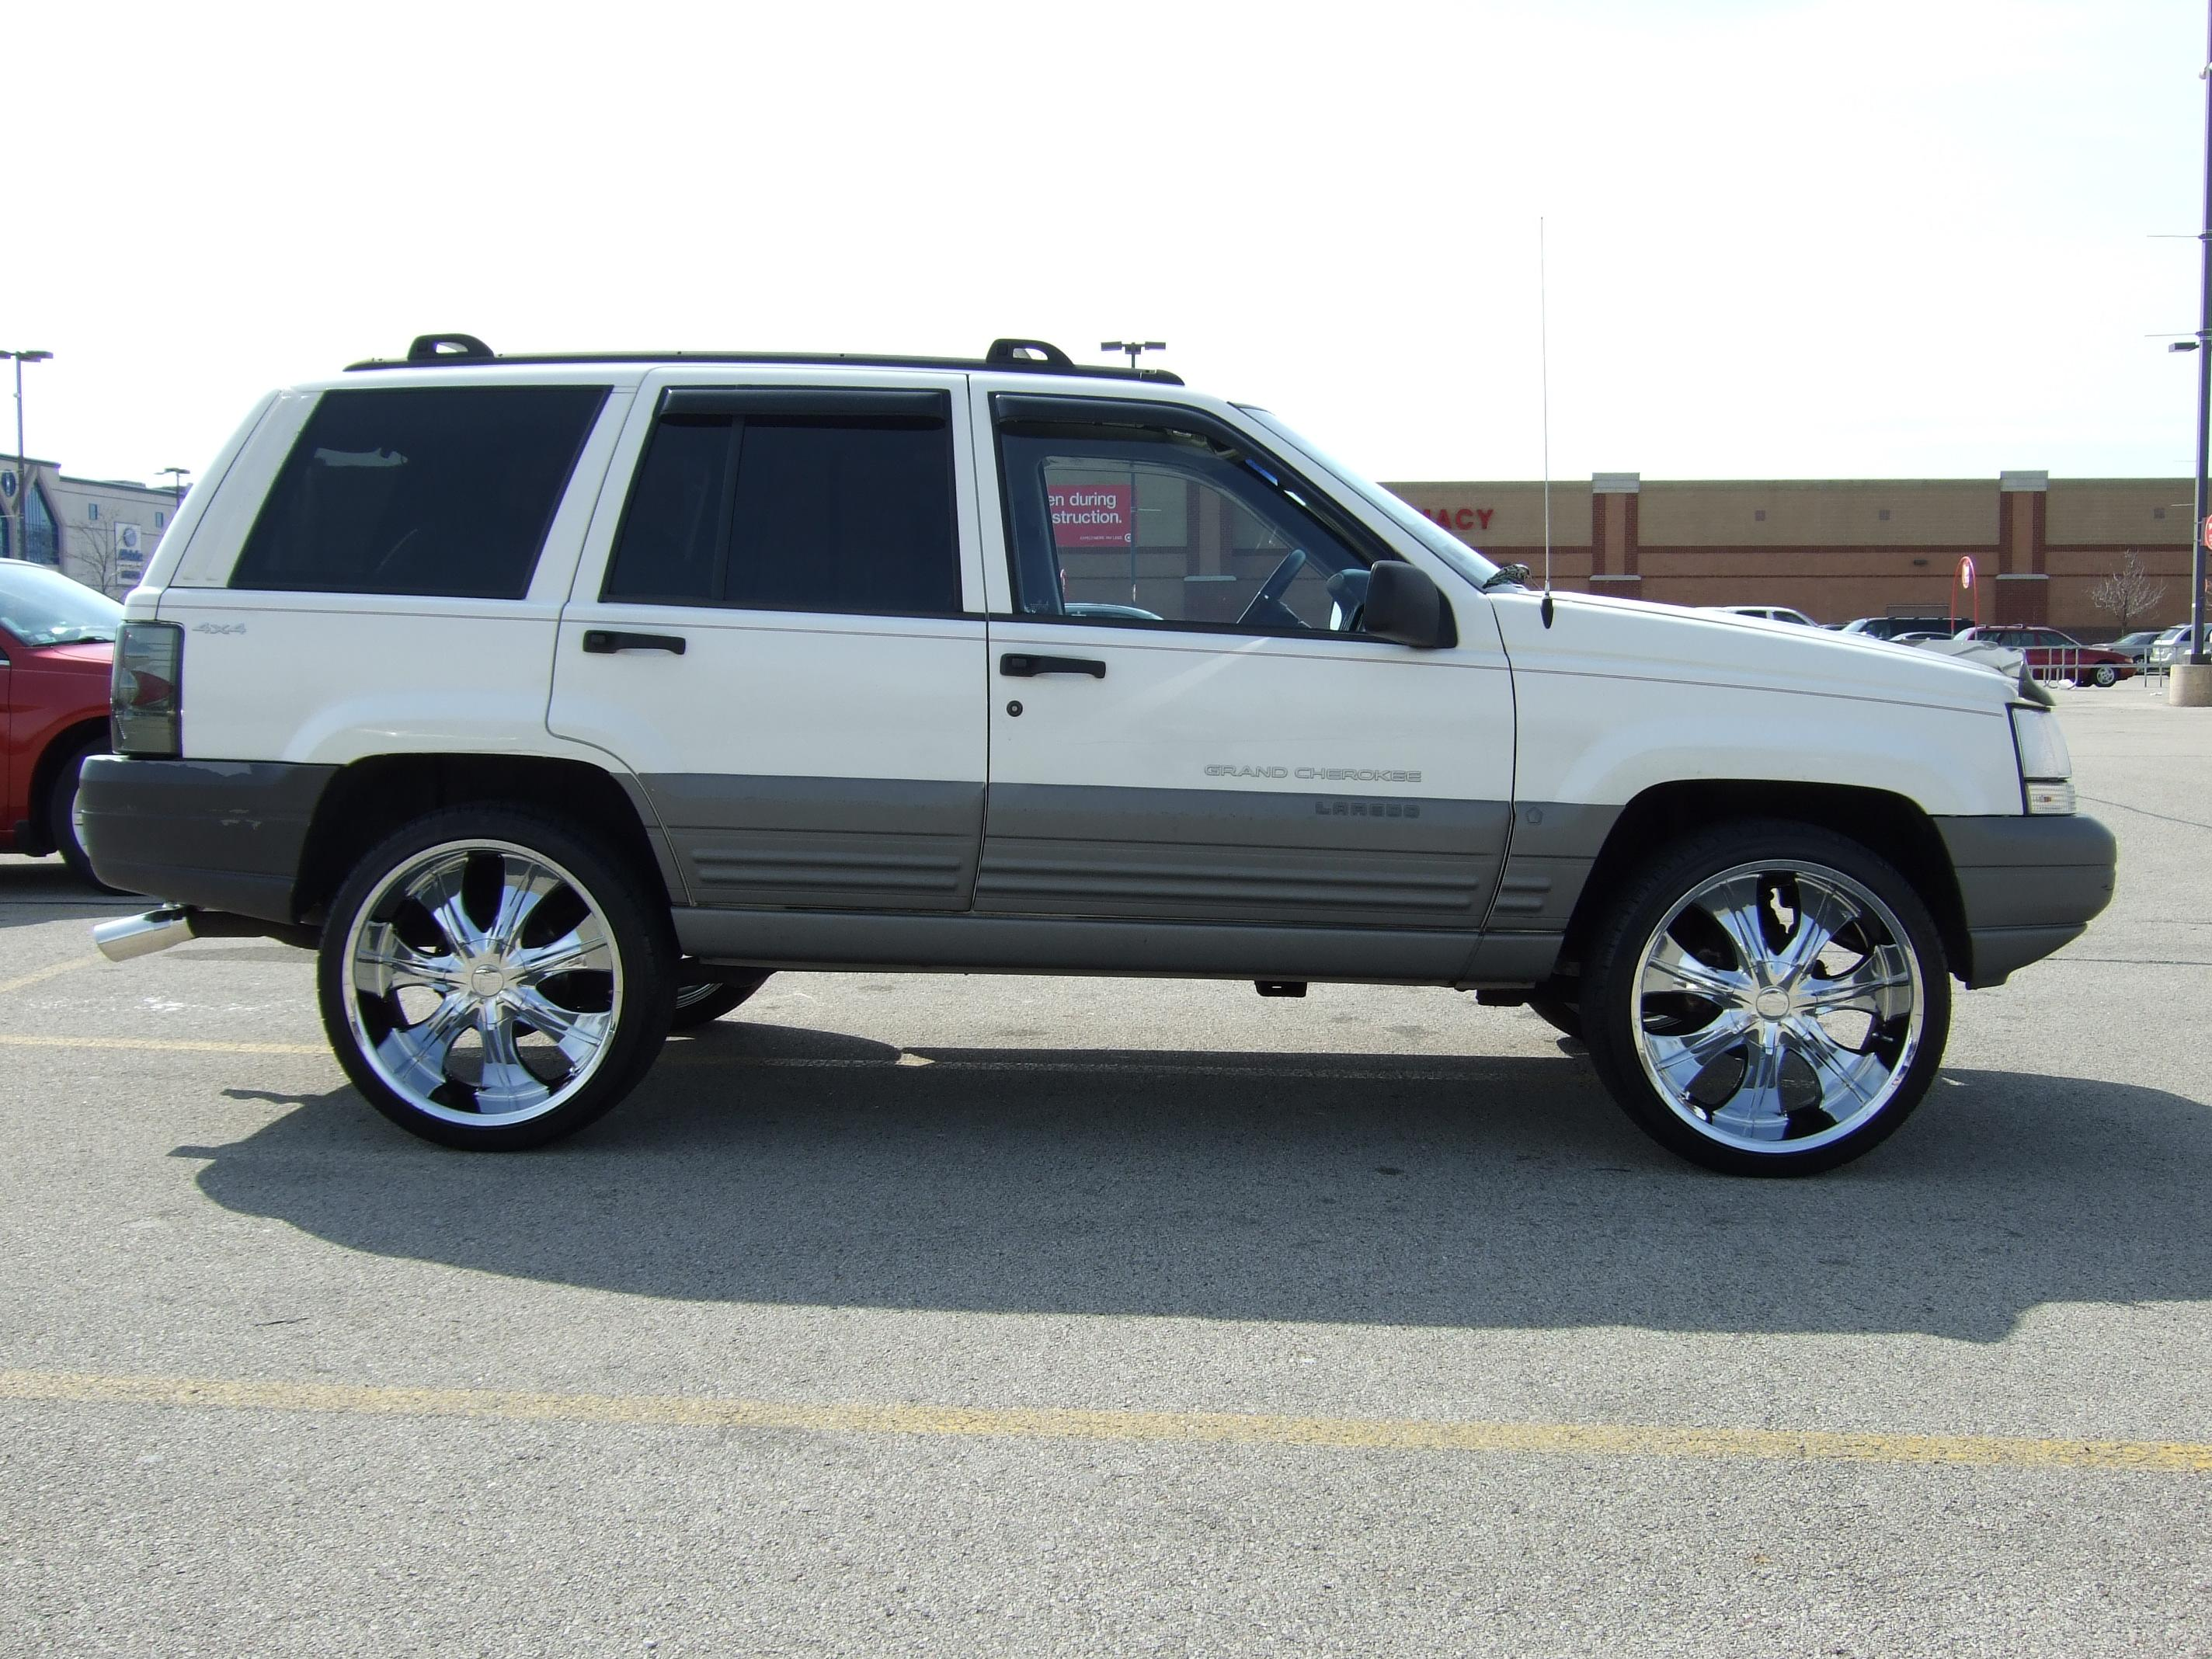 purplecty's 1997 Jeep Grand Cherokee